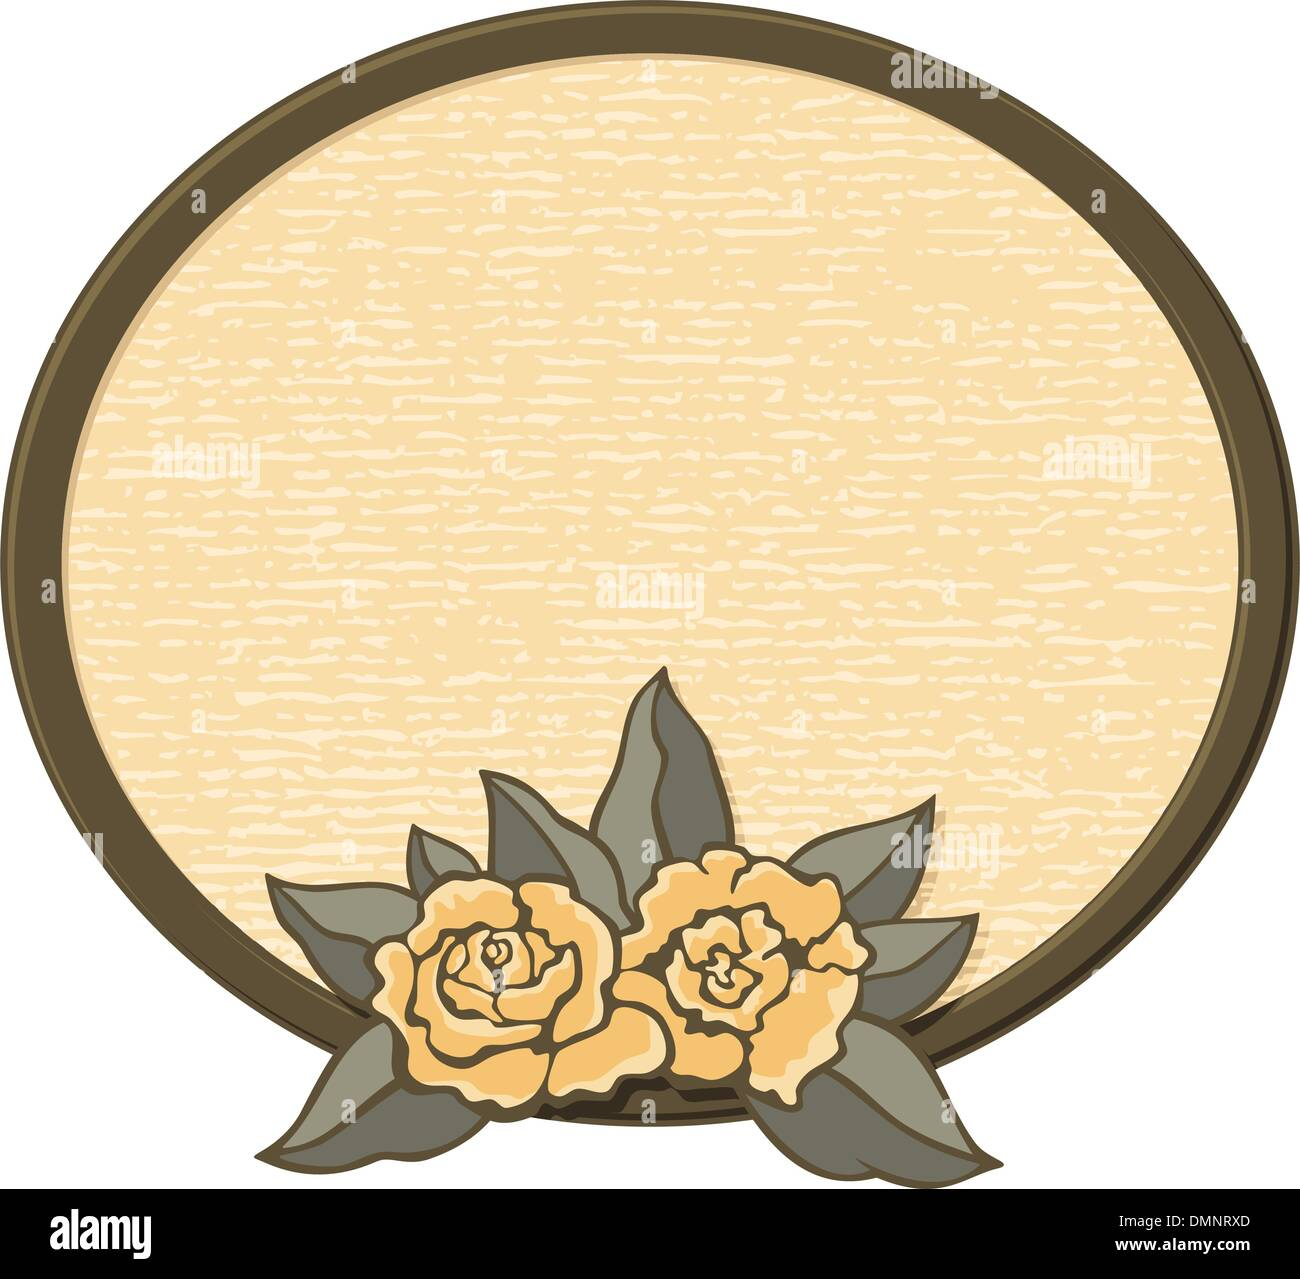 Oval frame with roses - Stock Image